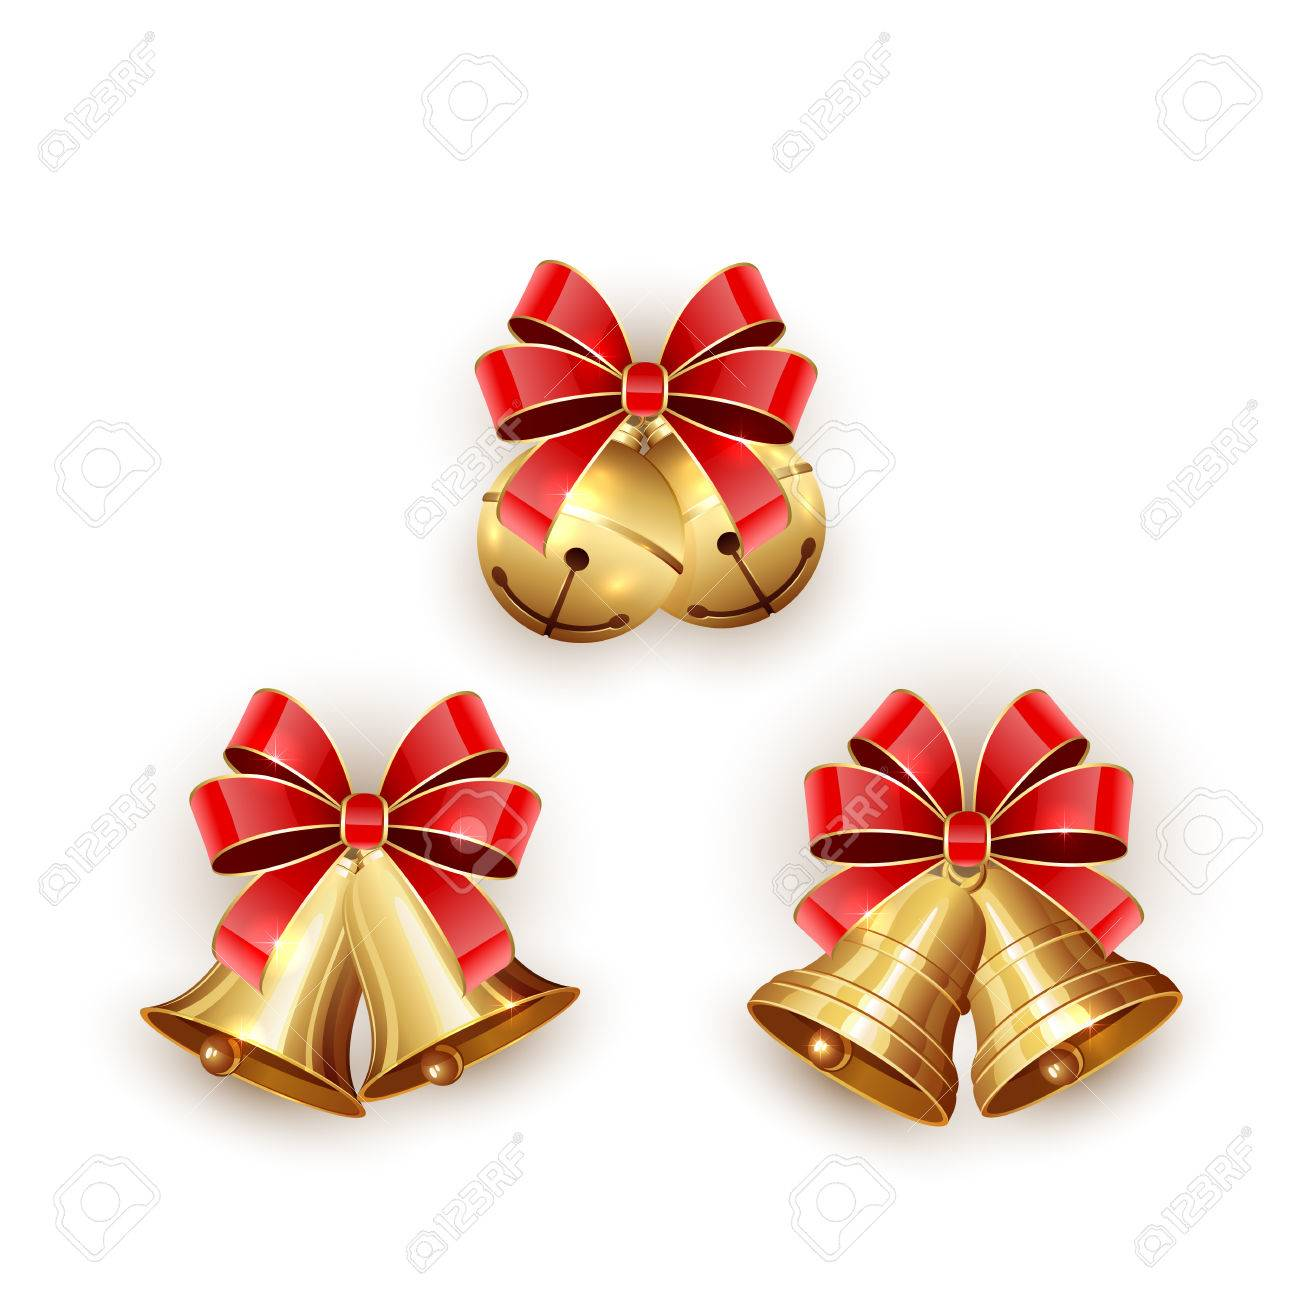 Set of golden Christmas bells with red bow on white background, illustration. - 46725867